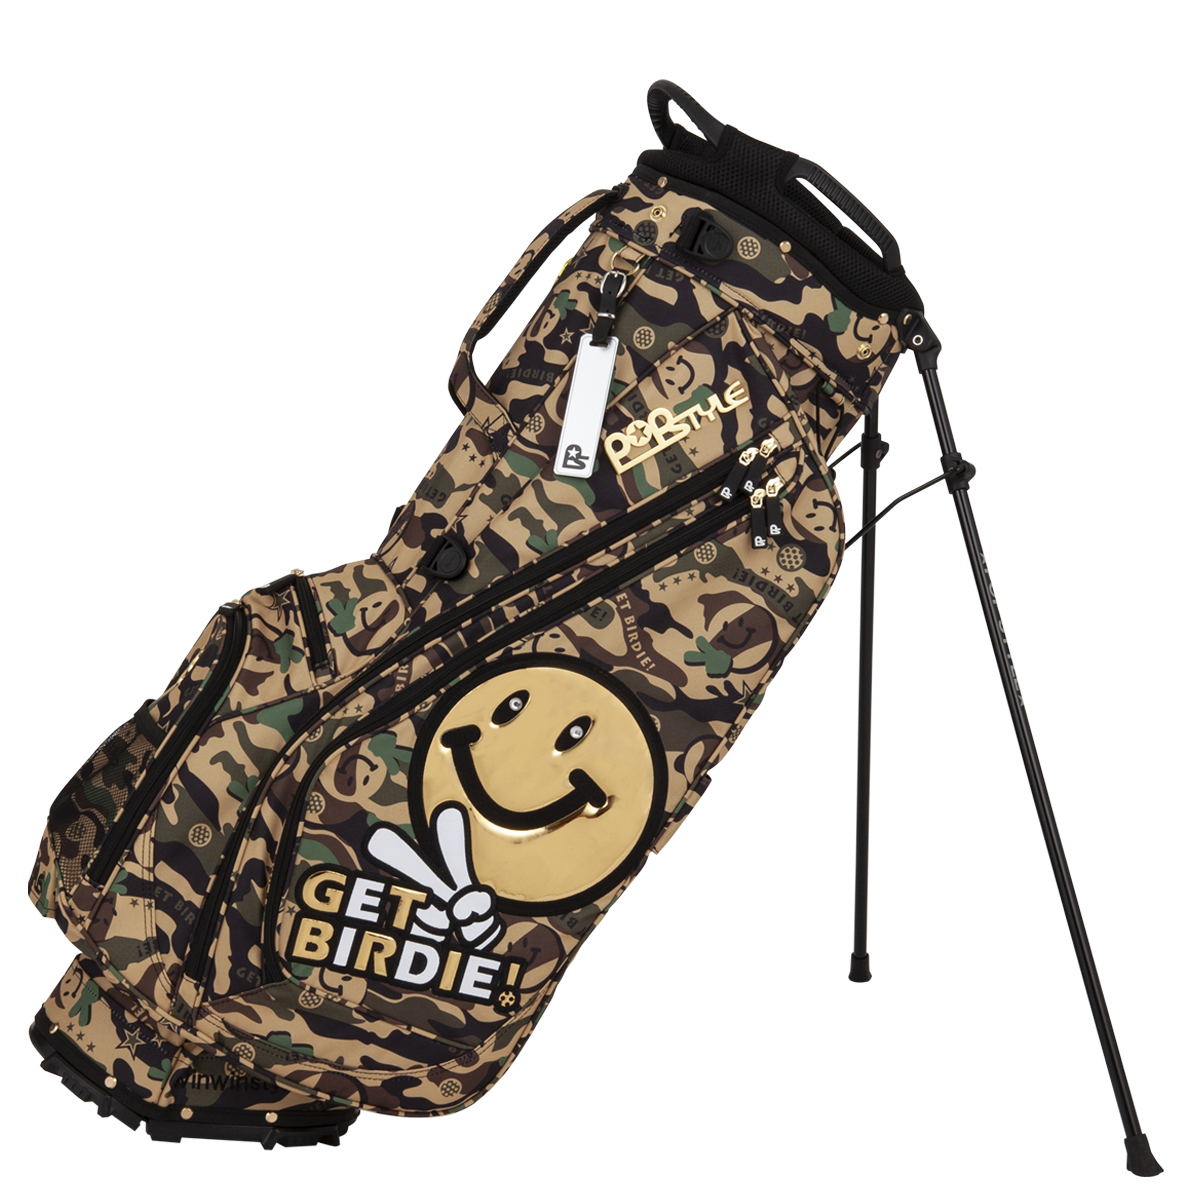 GET BIRDIE! CAMO LIGHT WEIGHT STAND BAG